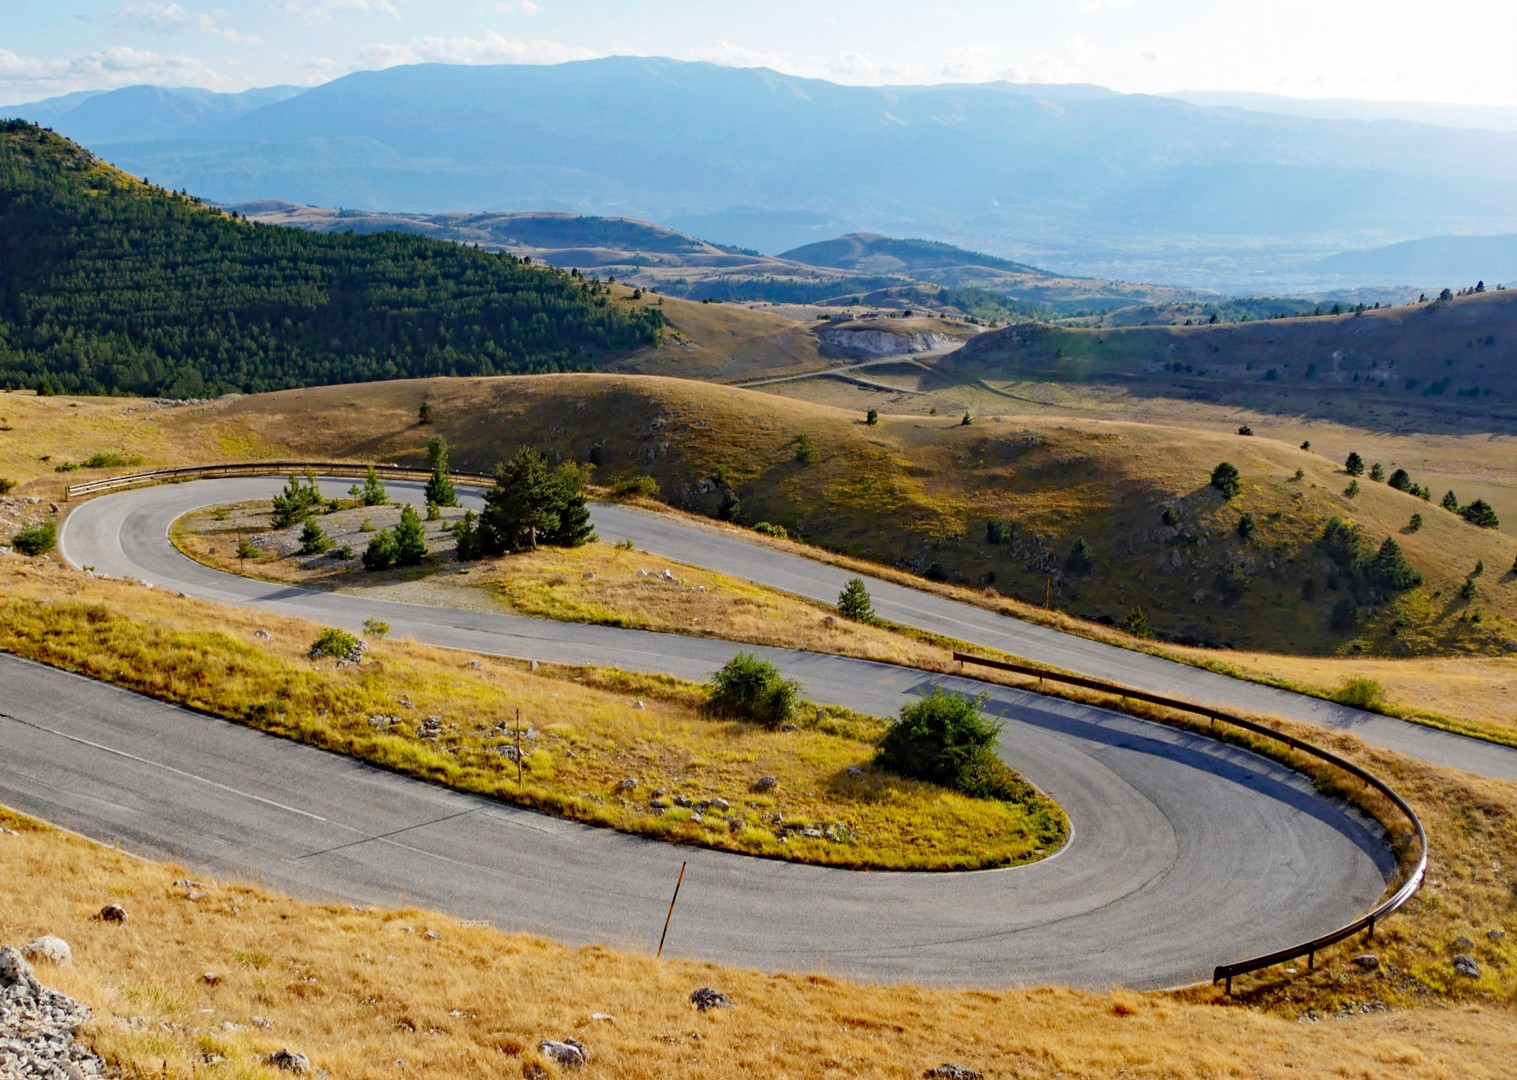 gran-sasso-hairpins-road-cycling-italy.jpg - Italy - Grand Traverse - North to South (17 days) - Guided Road Cycling Holiday - Road Cycling